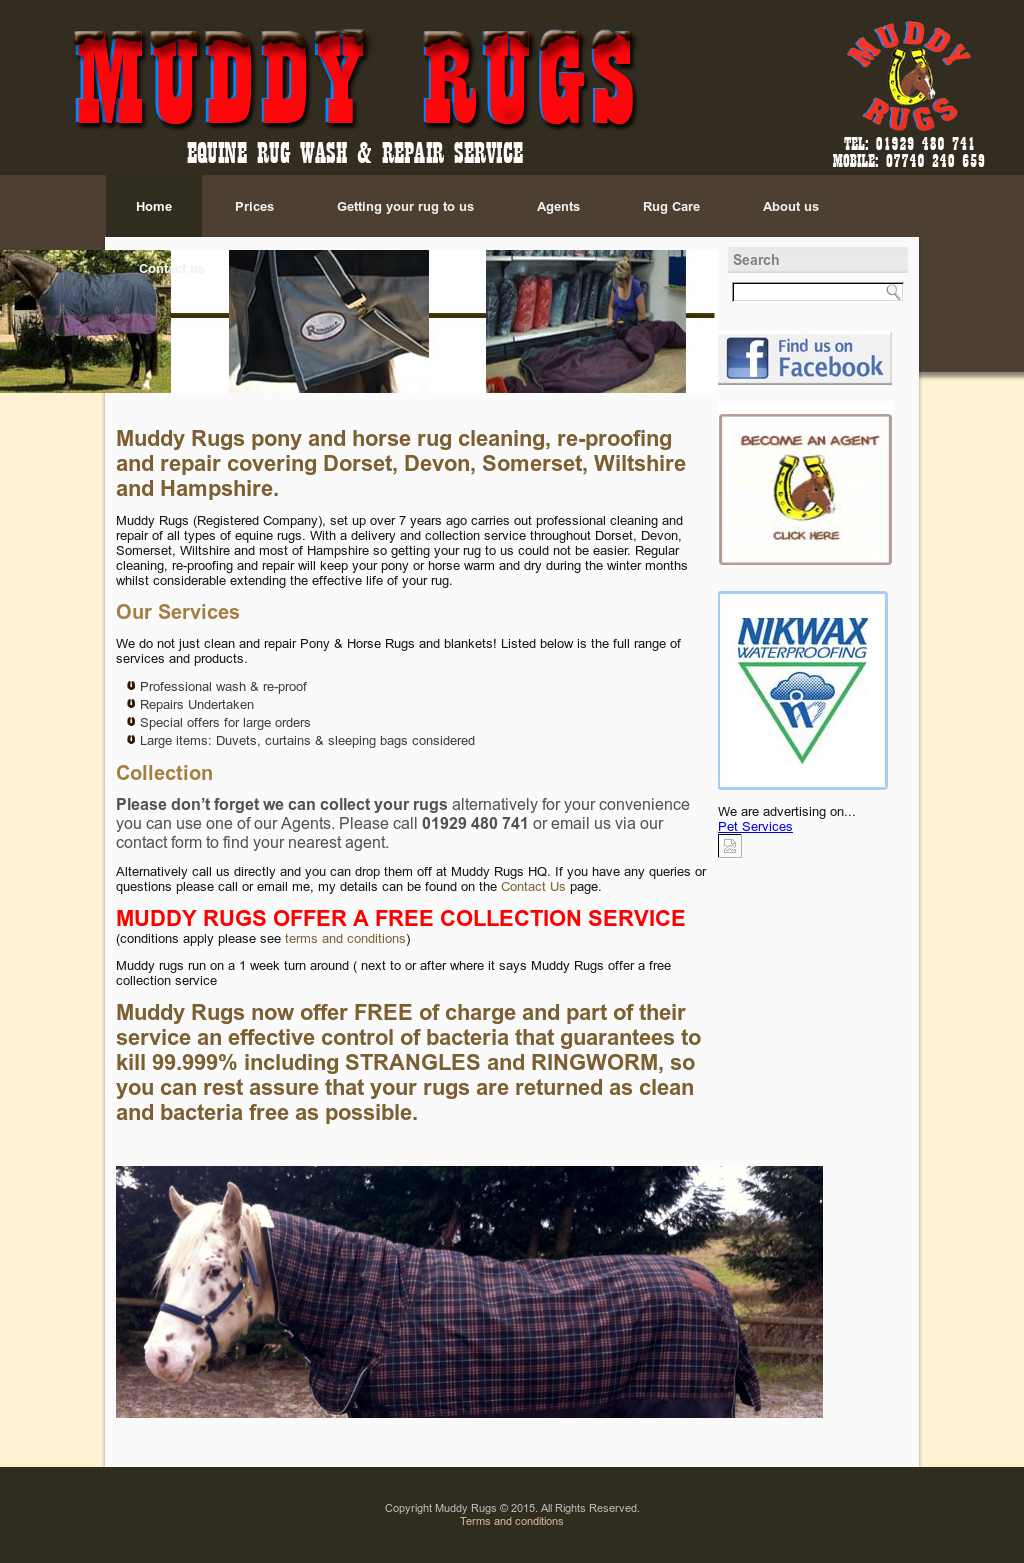 Muddy Rugs Horse Rug Cleaning Dorset Website History